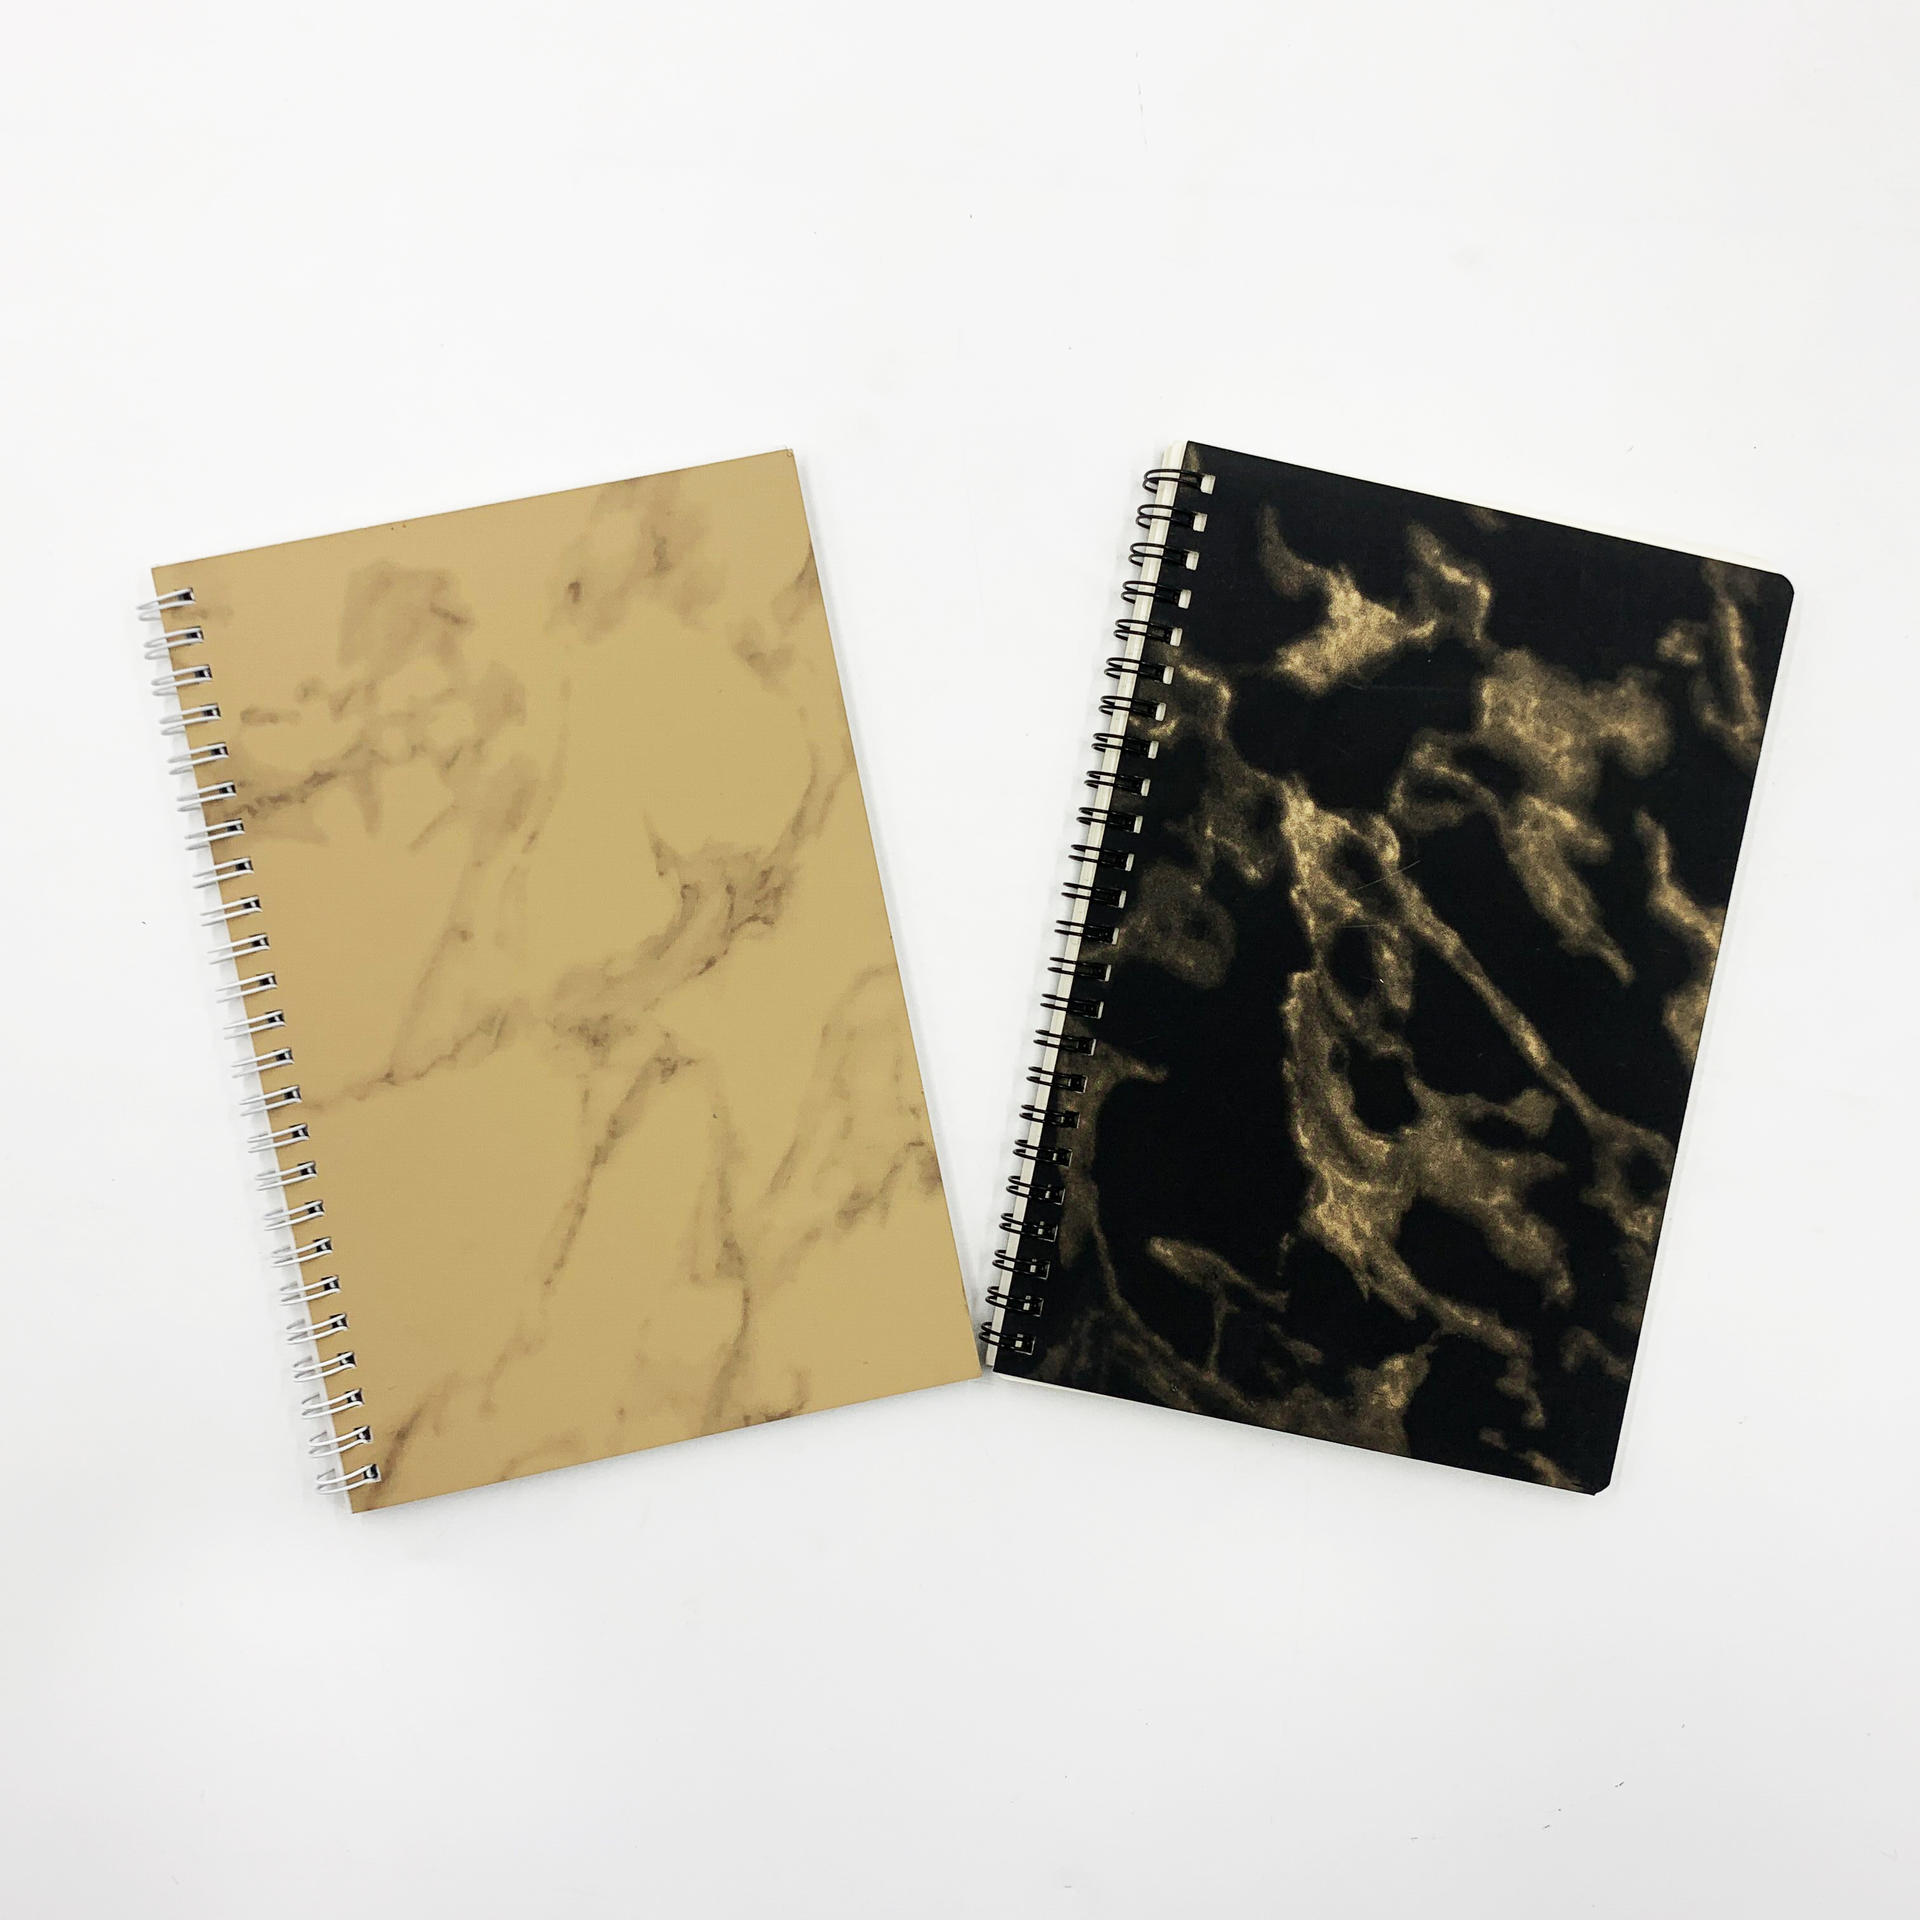 product-High quality cheap leather journal bullet spiral binding notebook customized refillable pu l-1